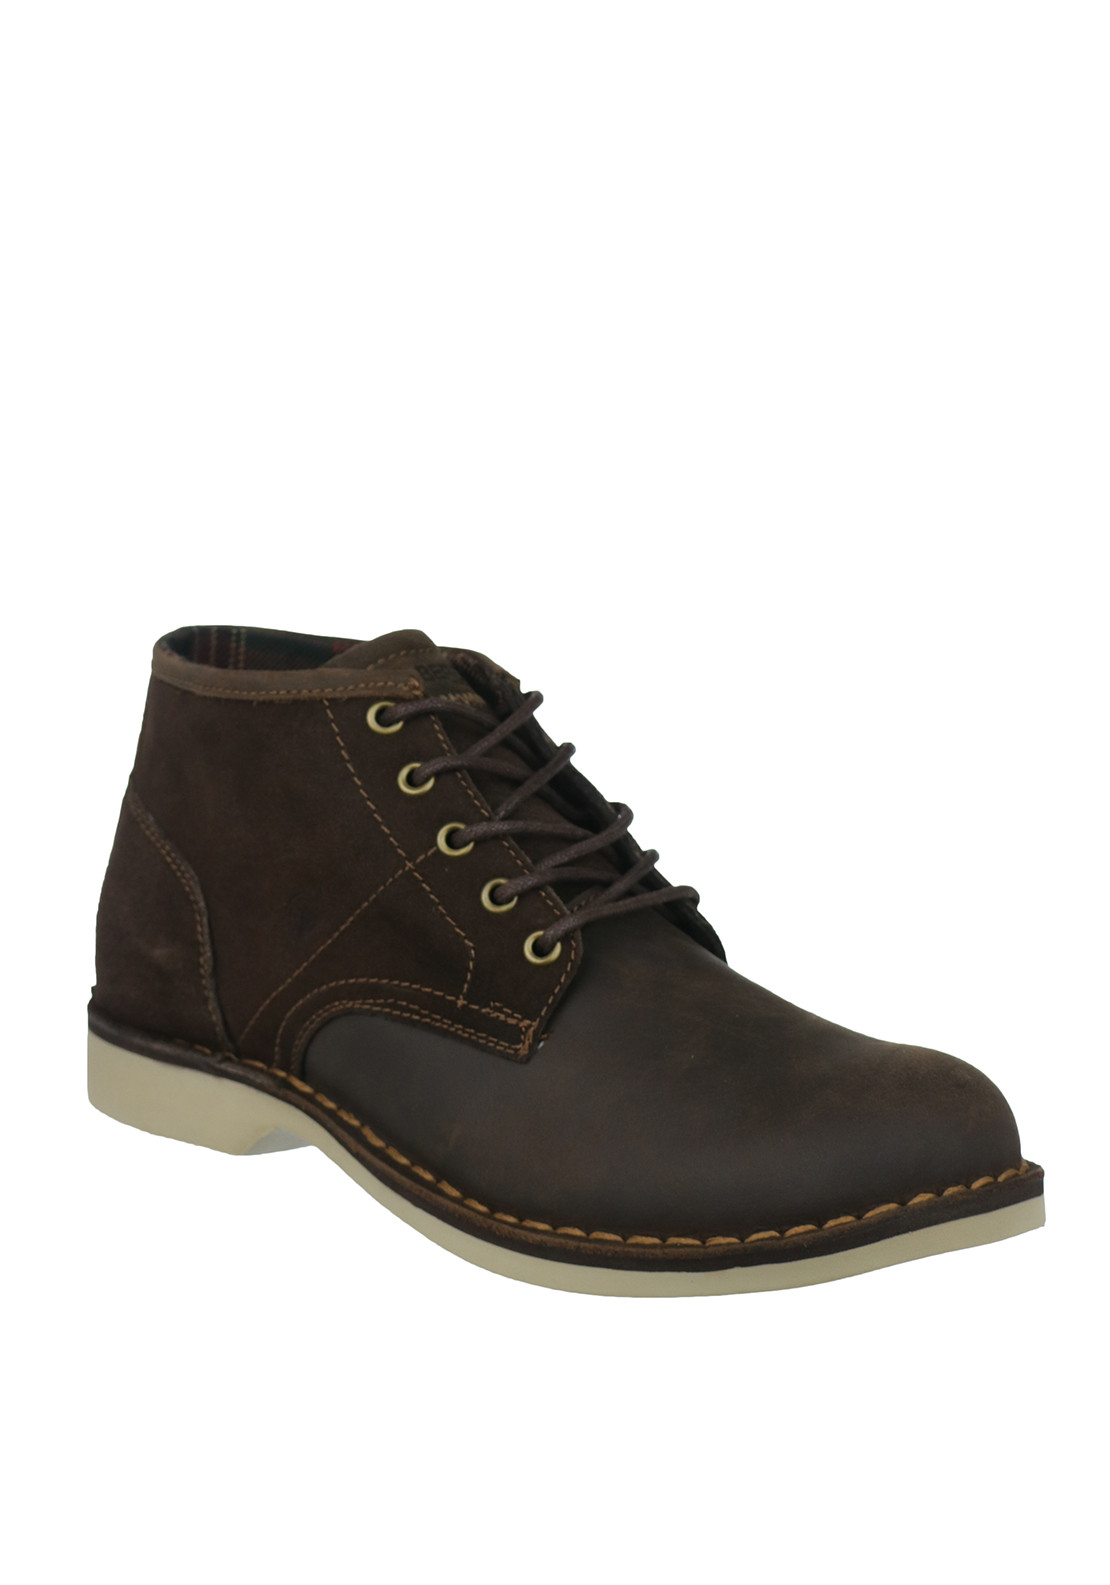 Berg Outdoor Mens Tosa Leather Boots, Brown